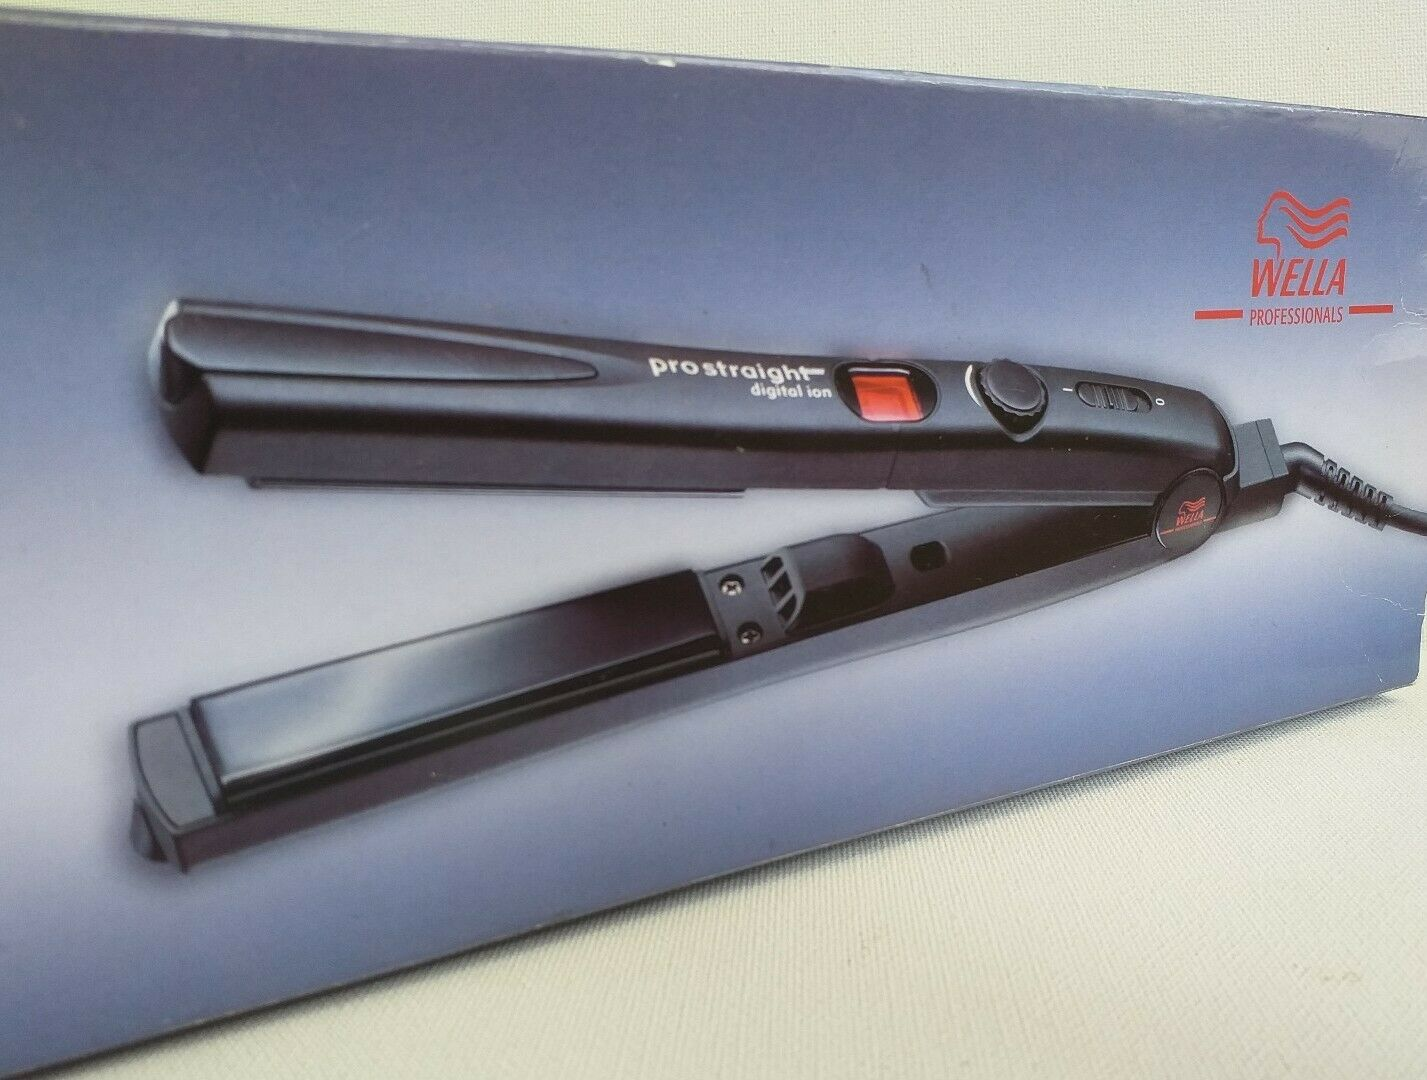 NEW Wella Professionals Hair Straighteners Pro Straight tested working